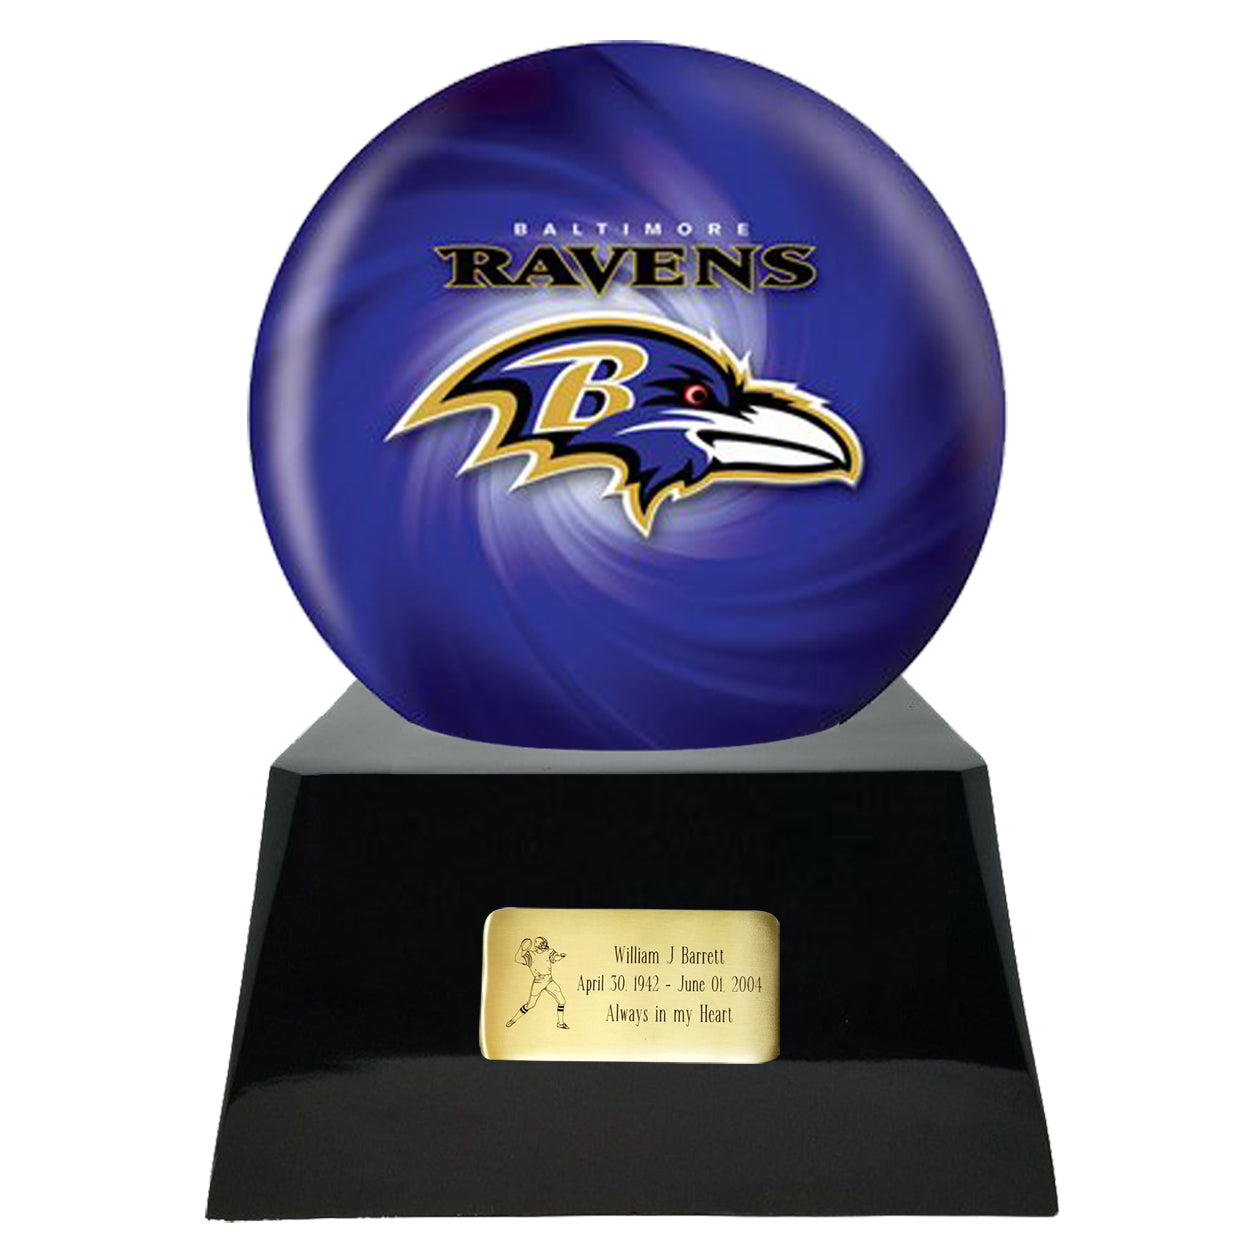 Football Cremation Urn and Baltimore Ravens Ball Decor with Custom Metal Plaque